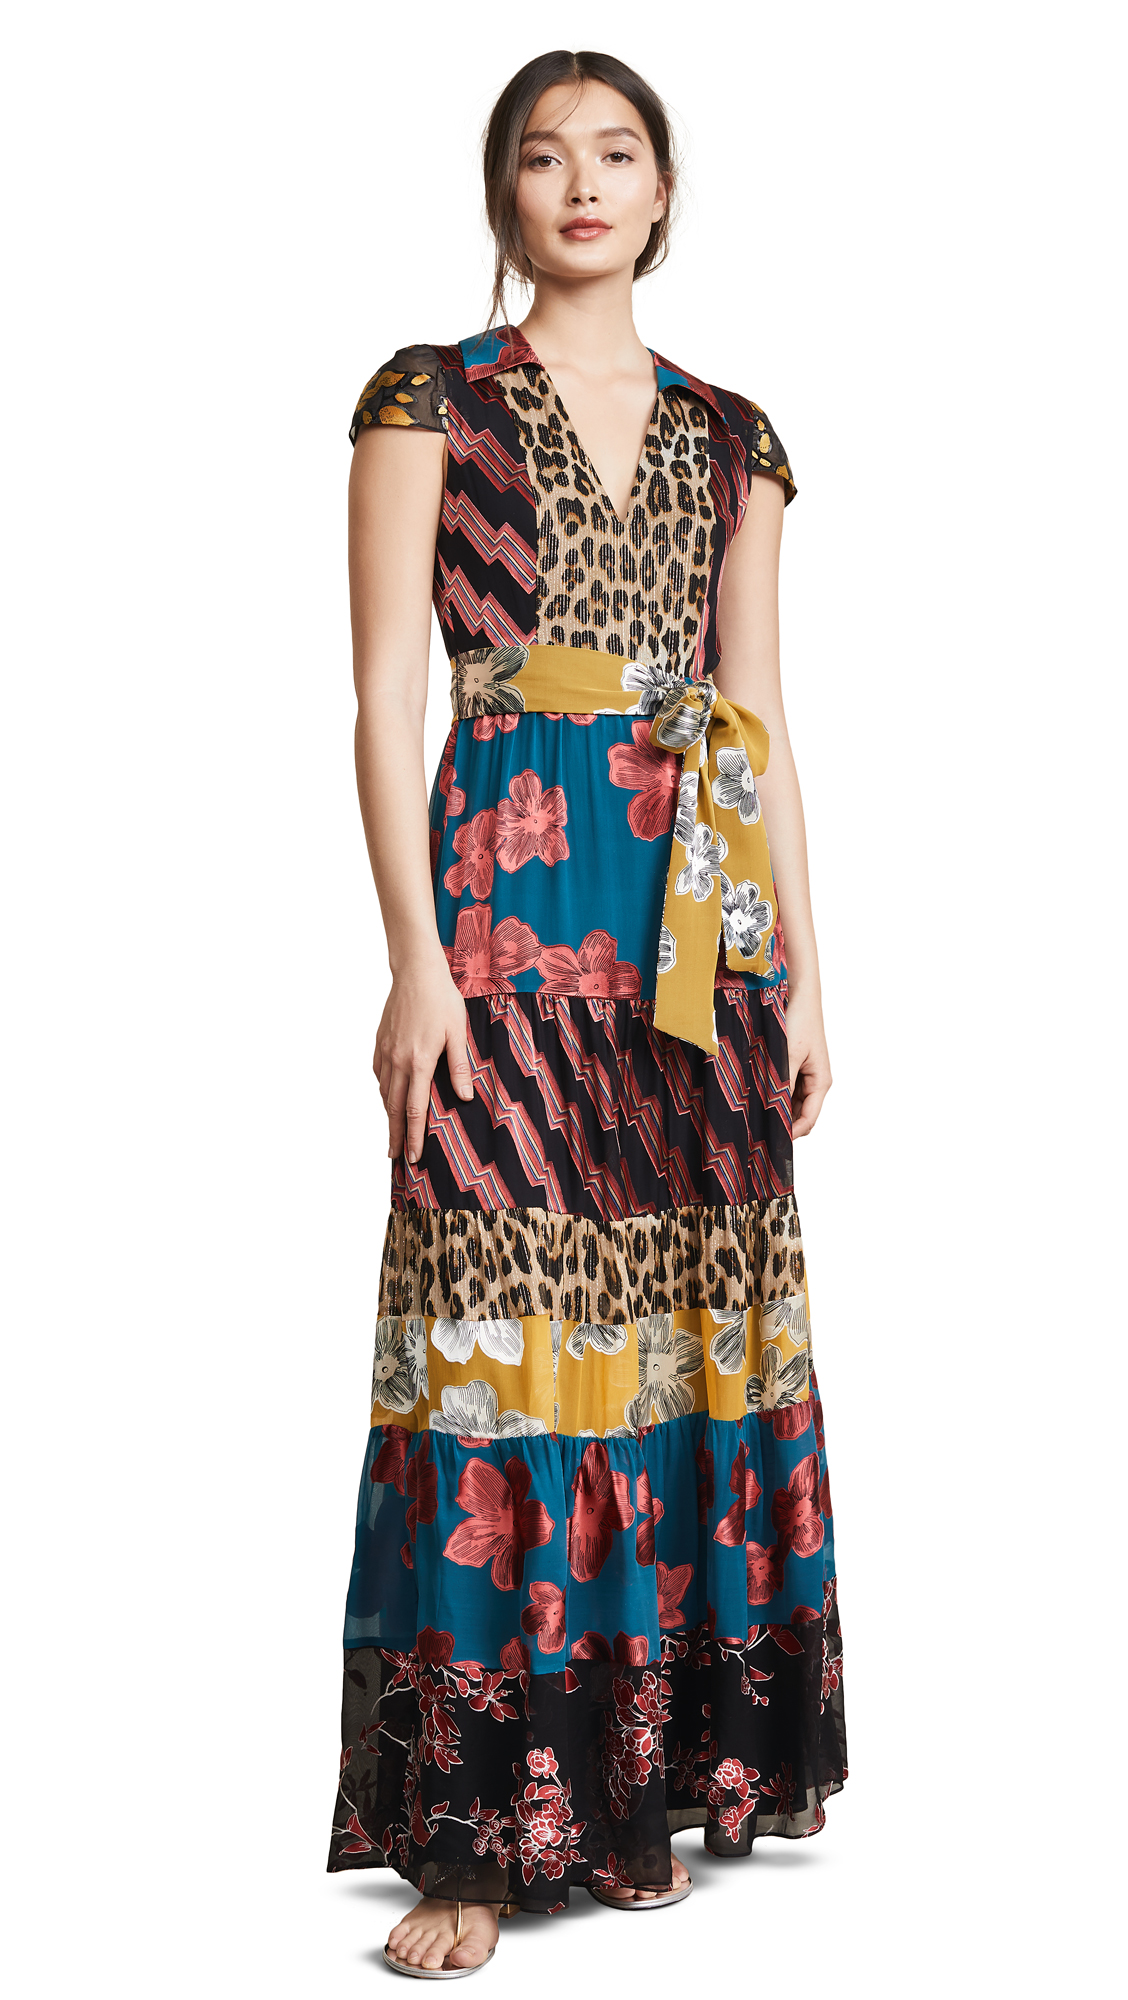 alice + olivia Della Maxi Dress with Waist Tie - Daisy Teal/Cherry